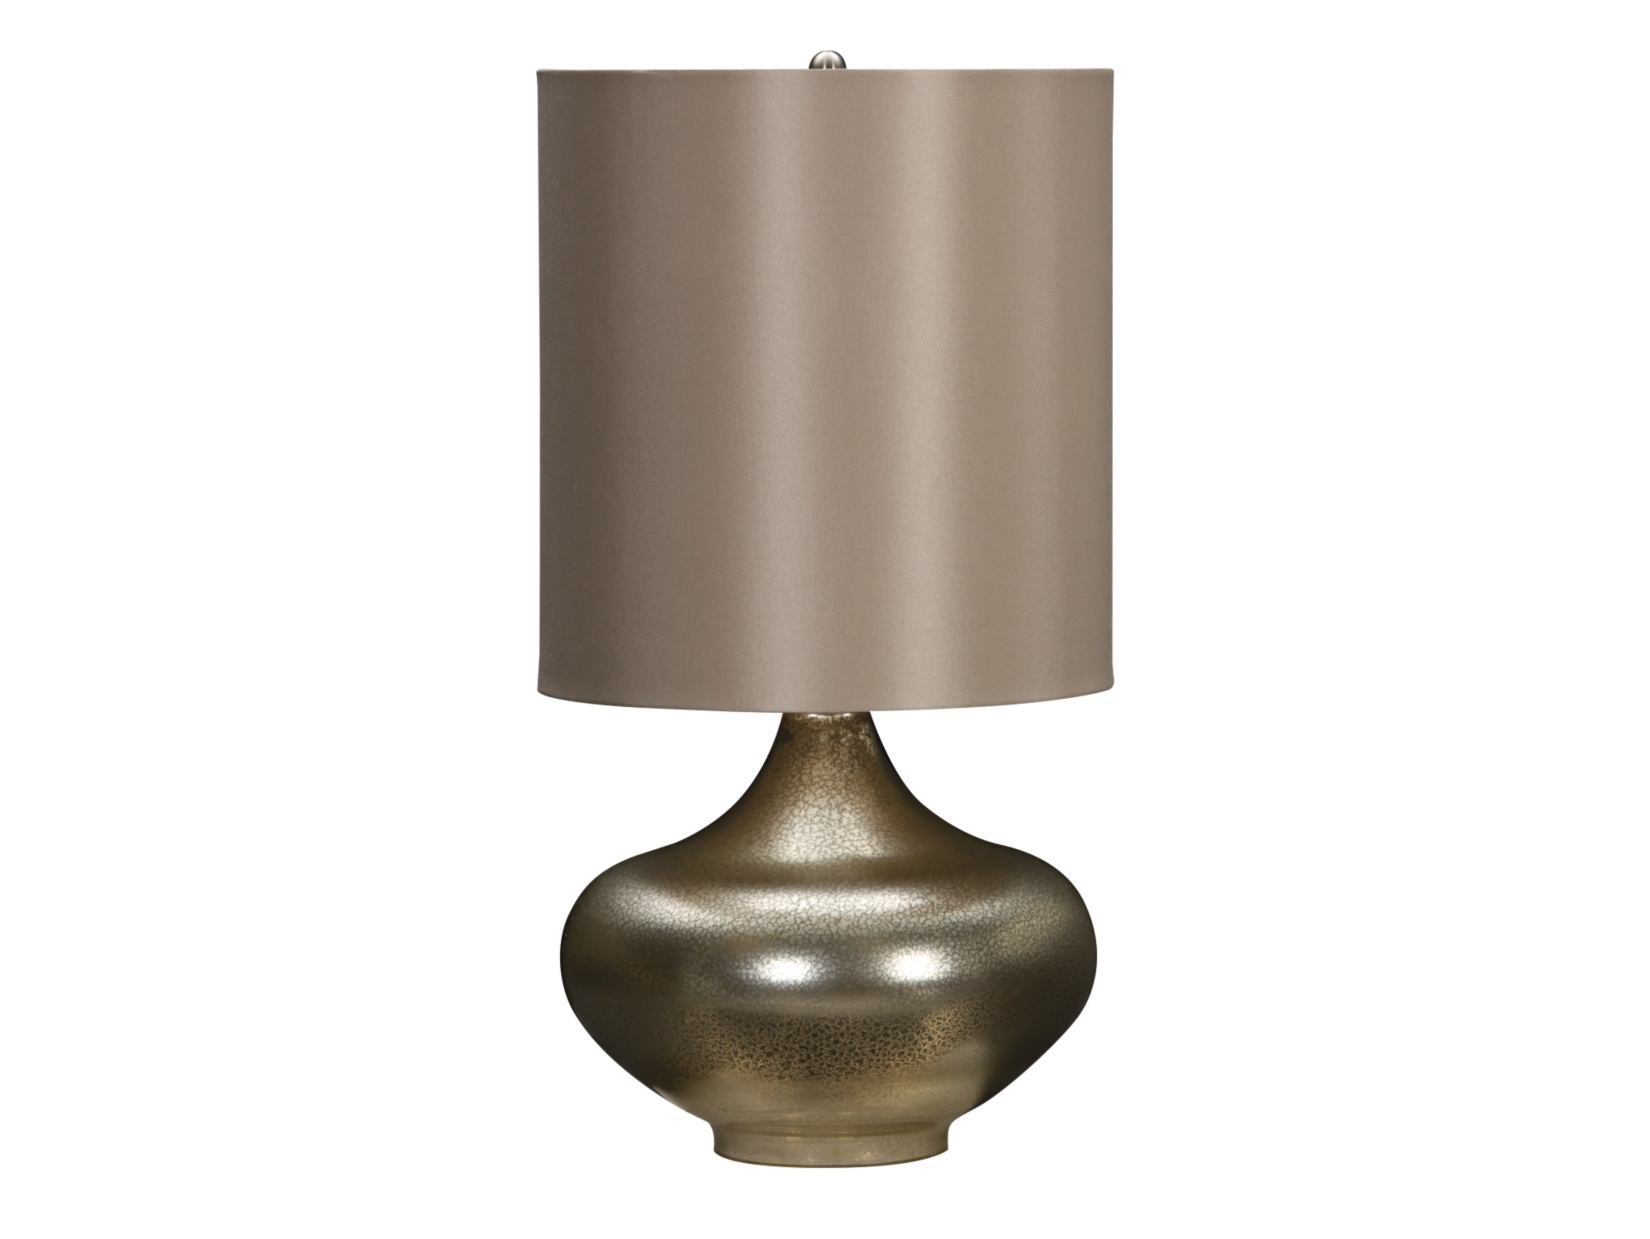 Valuecitypintowin Champaign Glass 27 Table Lamp Value City Furniture Lamp Value City Furniture Table Lamps Living Room